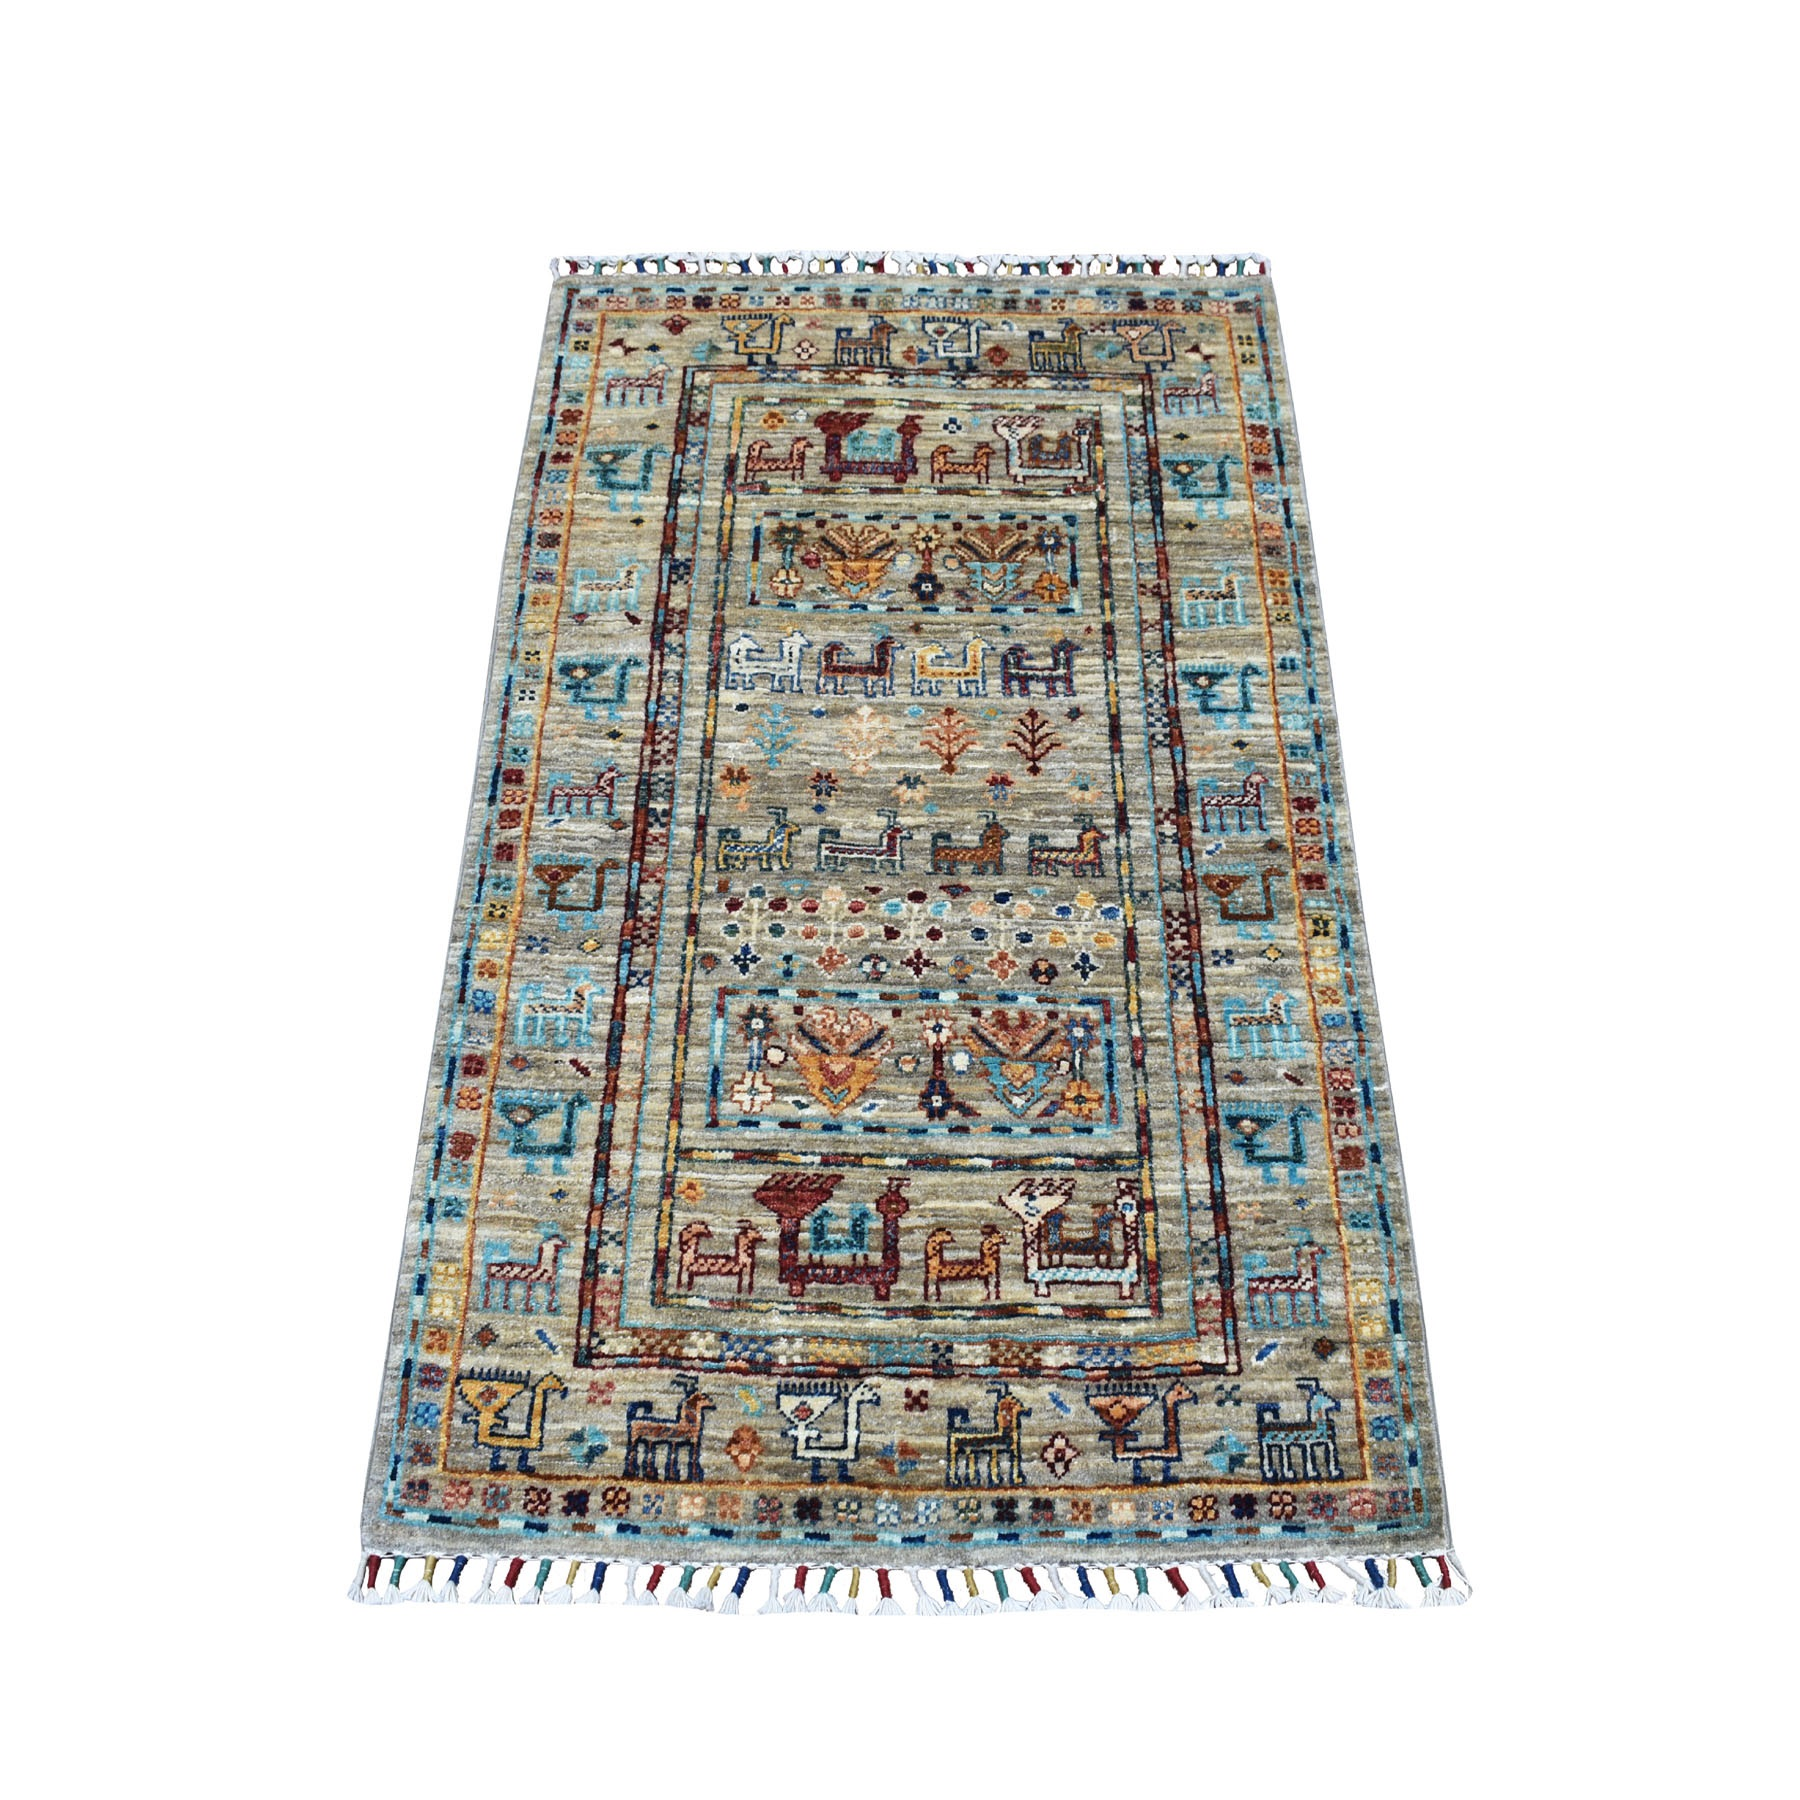 "2'7""x4' Khorjin Design Colorful Super Kazak Pure Wool Hand Knotted Oriental Rug"